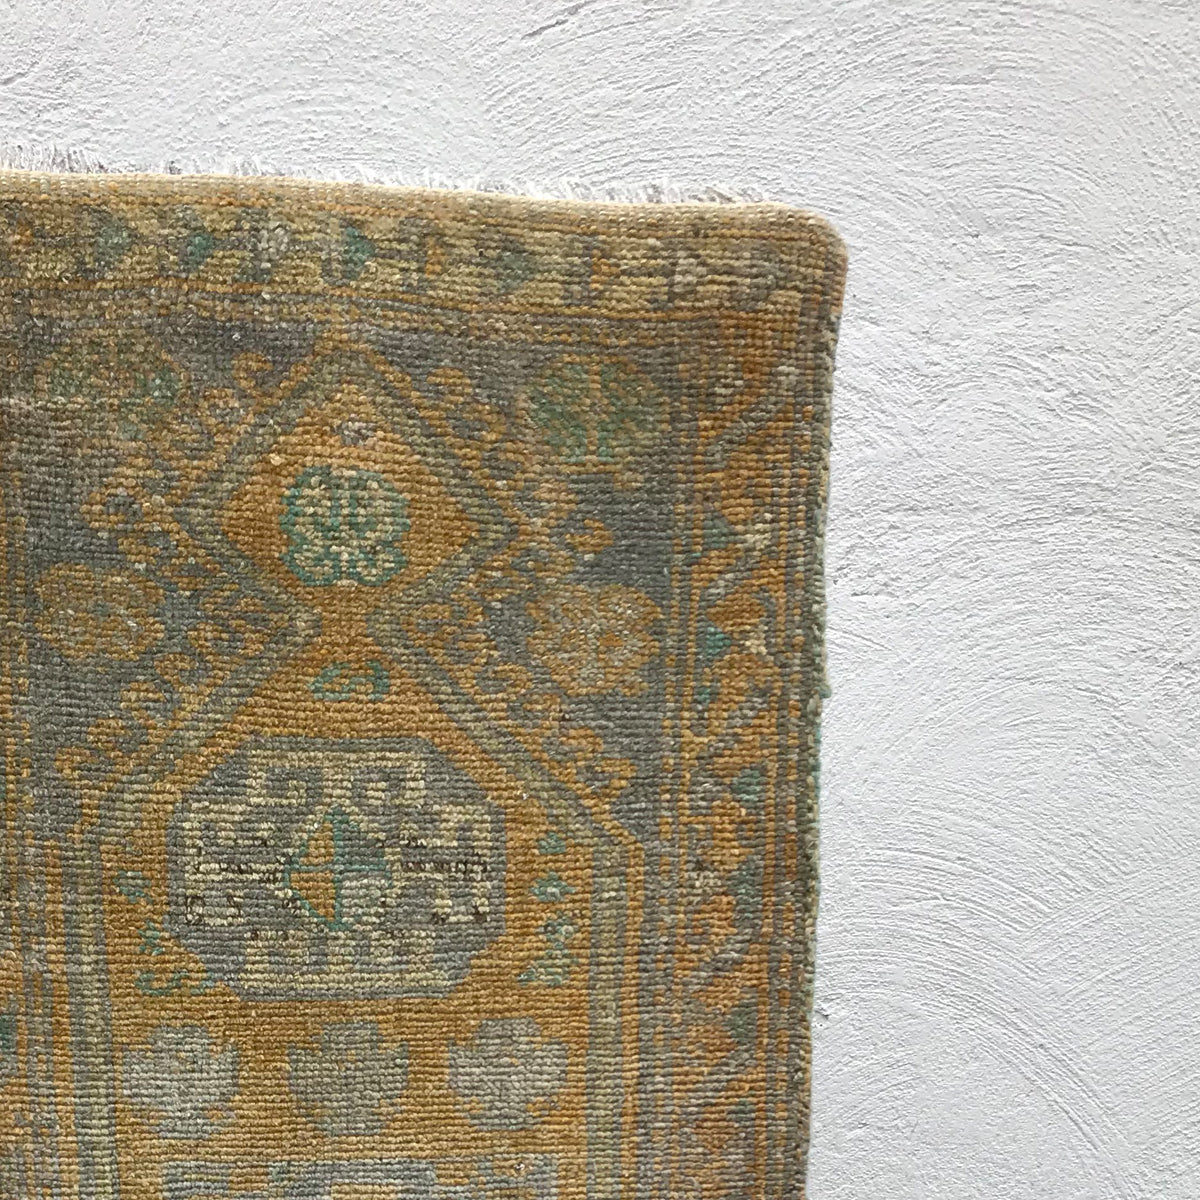 This small handwoven vintage Turkish rug has gorgeous blues and golds and is super soft! Great for entryways, bathrooms, kitchens and layering. 17x38 inches.